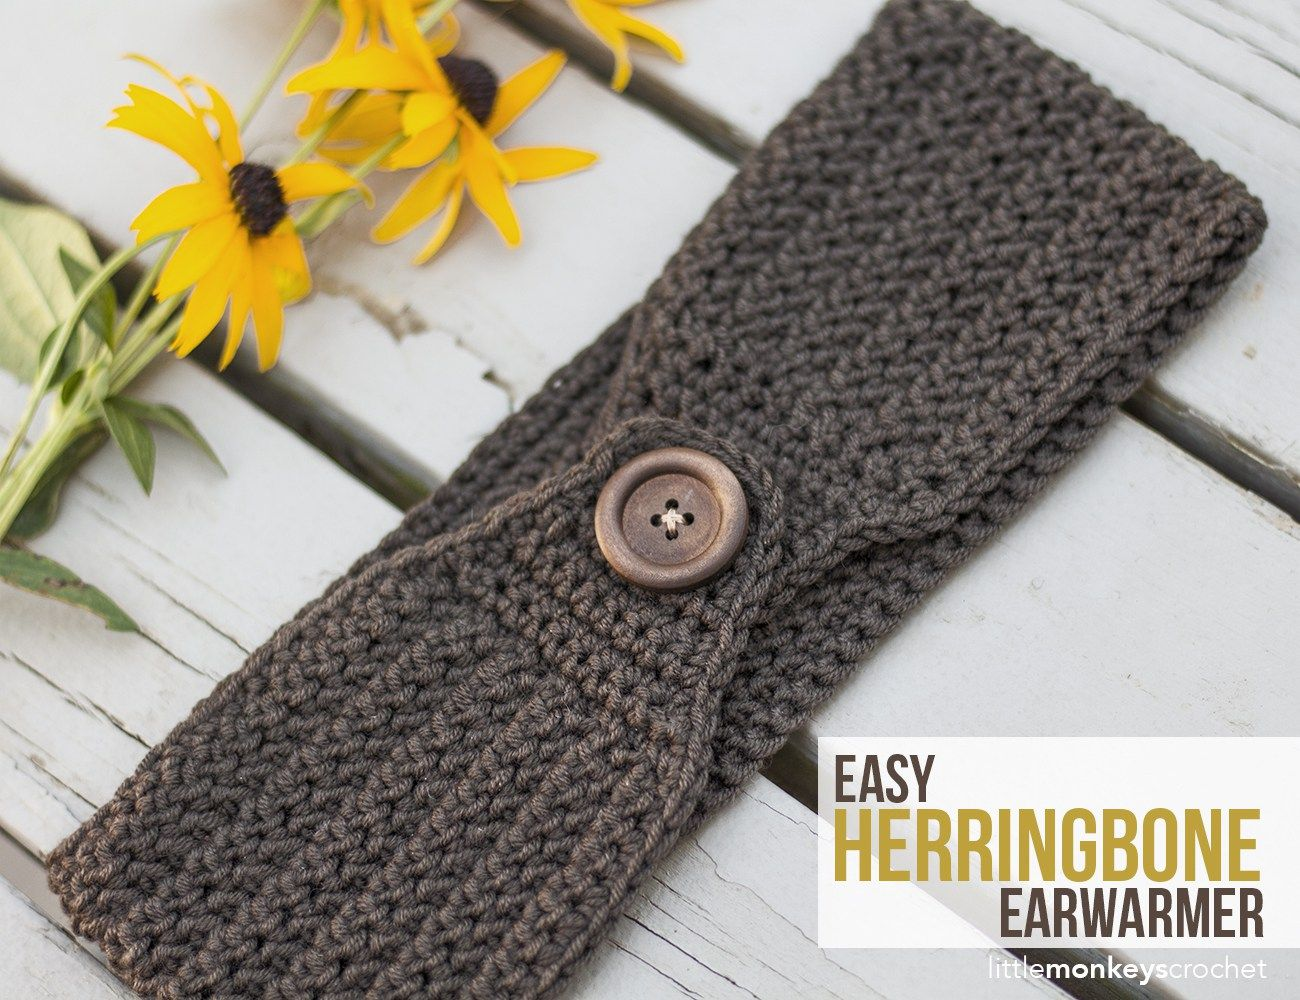 Easy Herringbone Earwarmer | Free buttons, Herringbone and Monkey